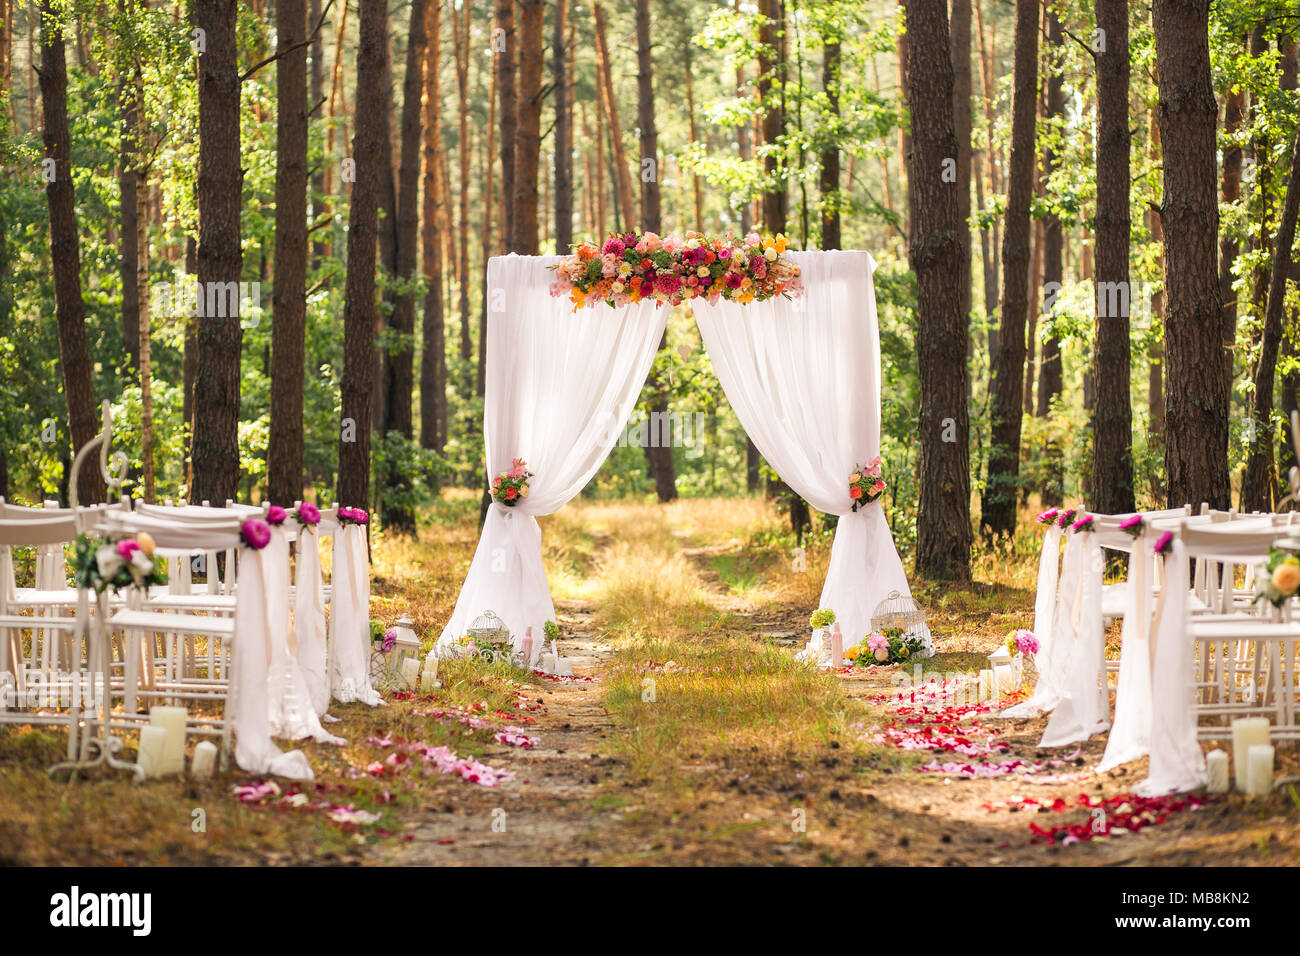 Beautiful Elegant Wedding Decorations Of Place For Ceremony Outside